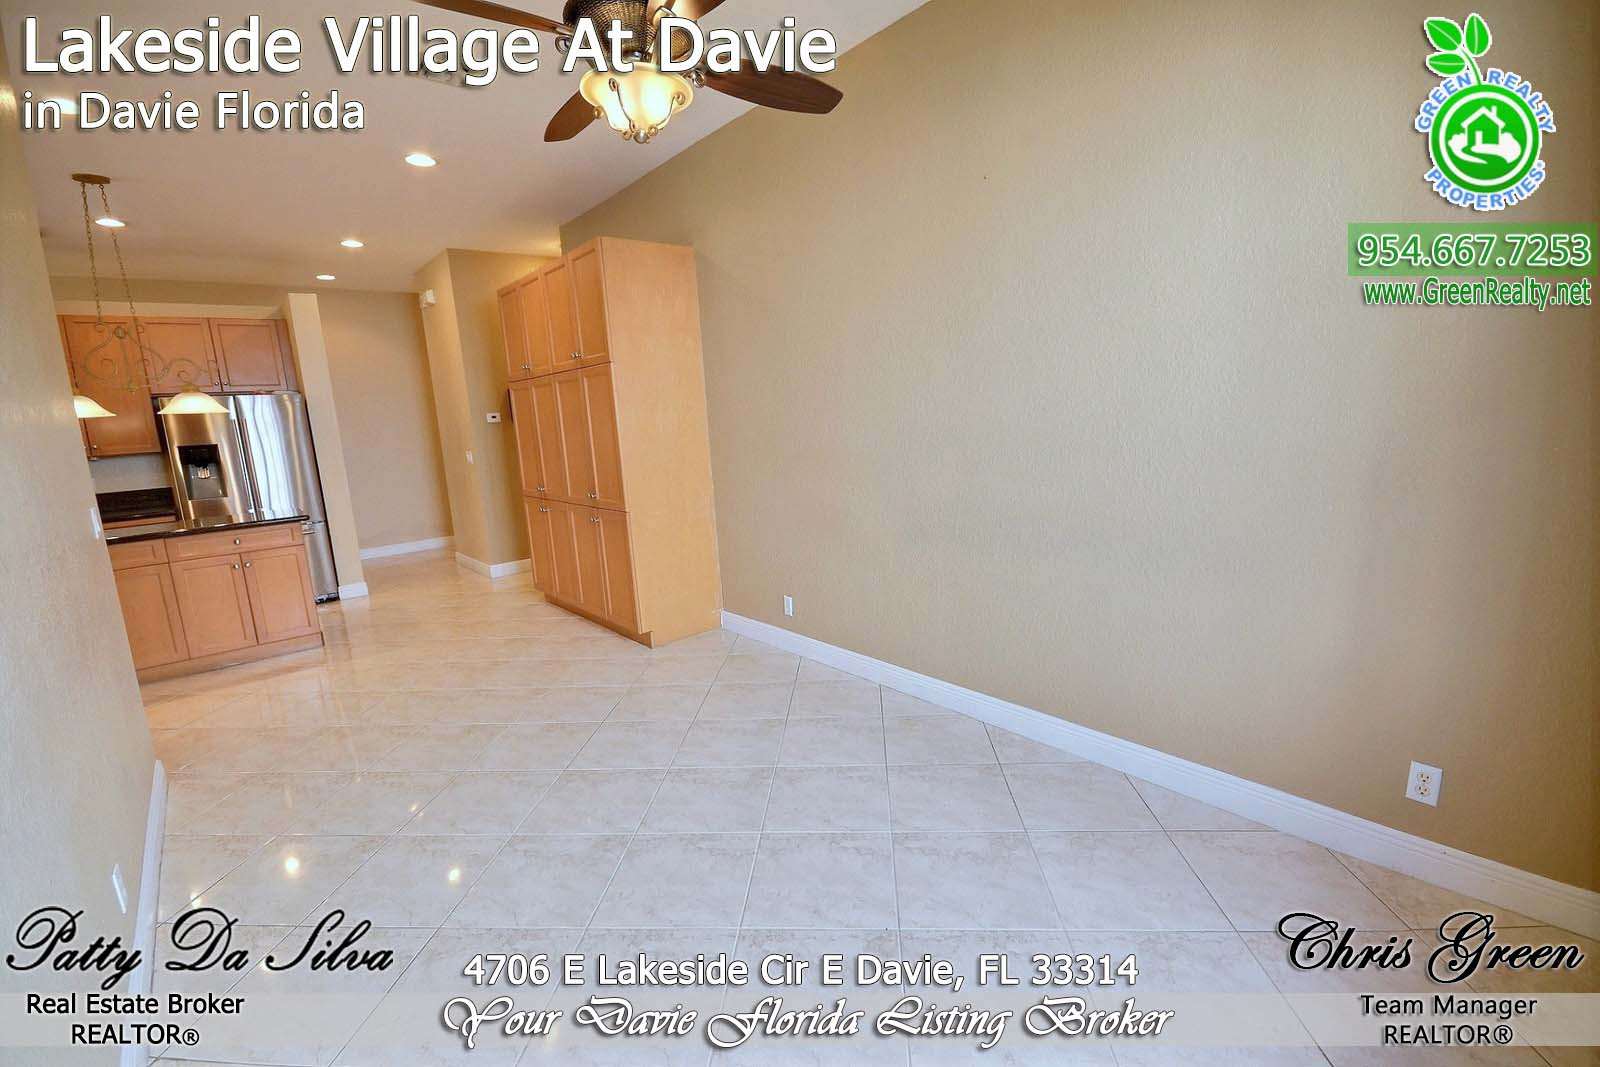 14 Davie Real Estate For Sale (3)